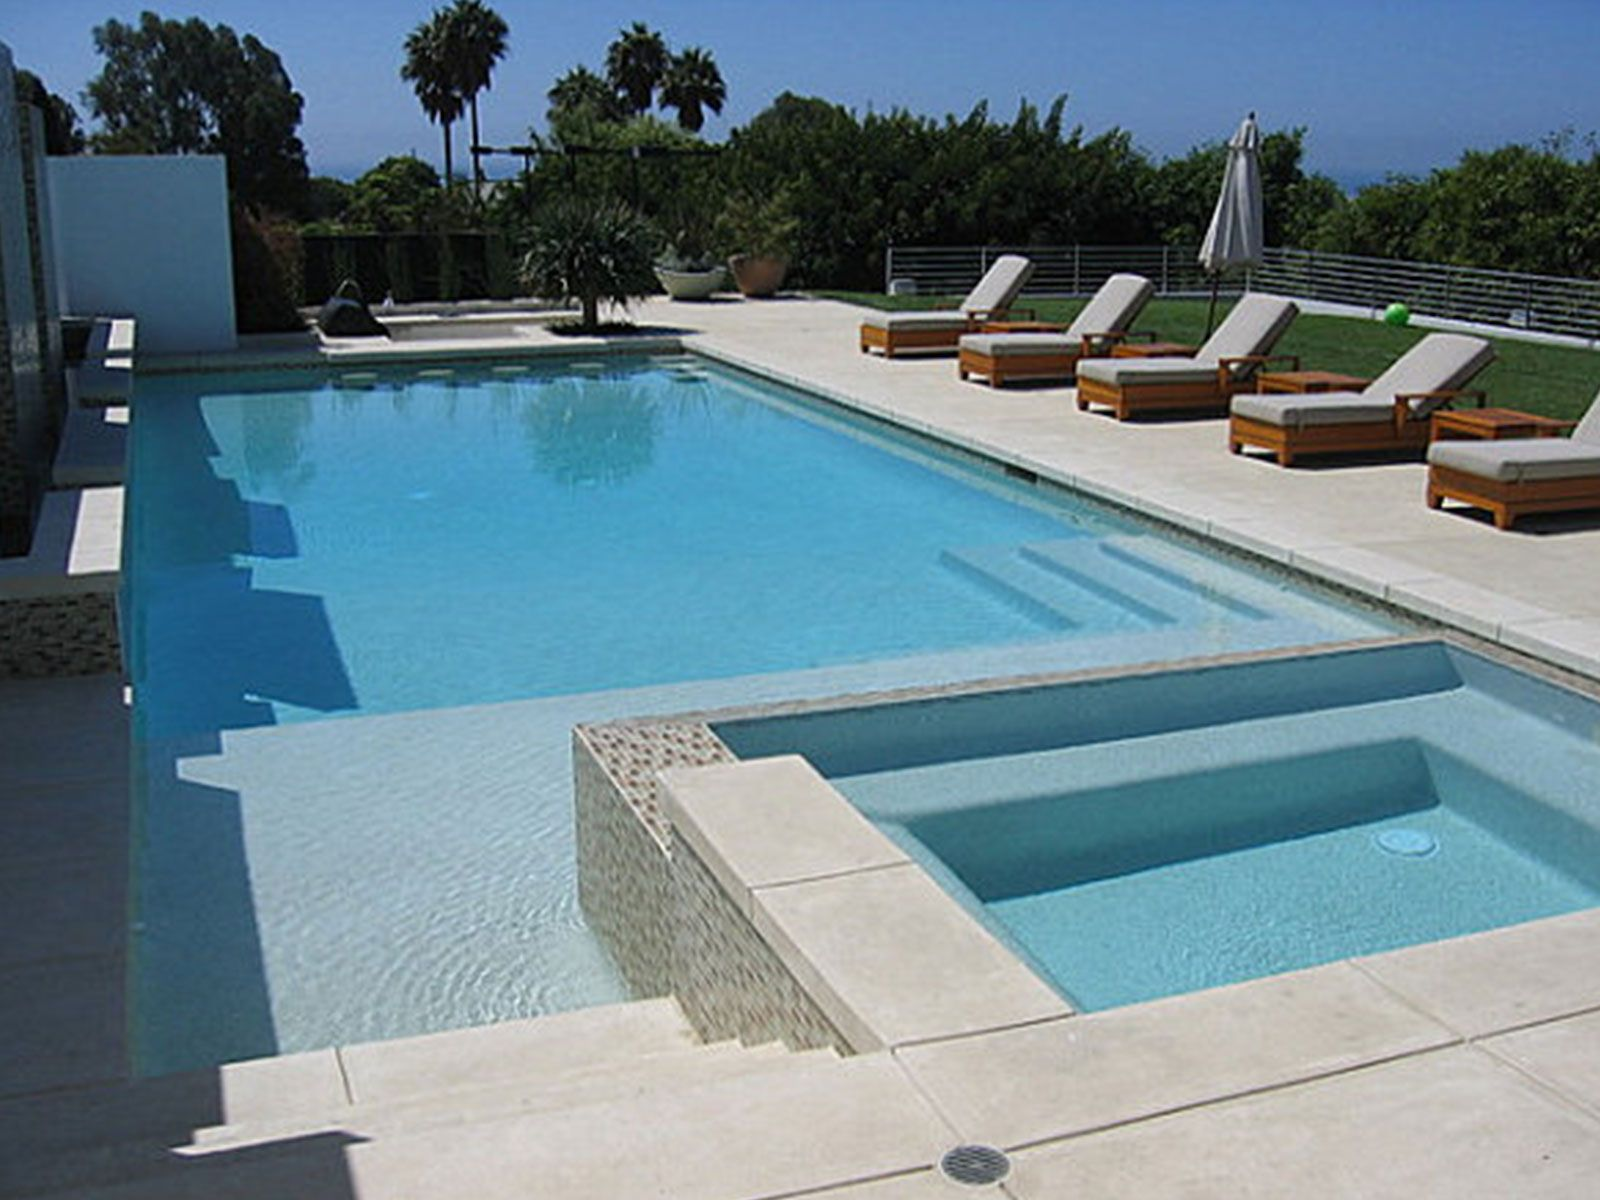 Simple swimming pool design image modern creative swimming for Swimming pool plans online